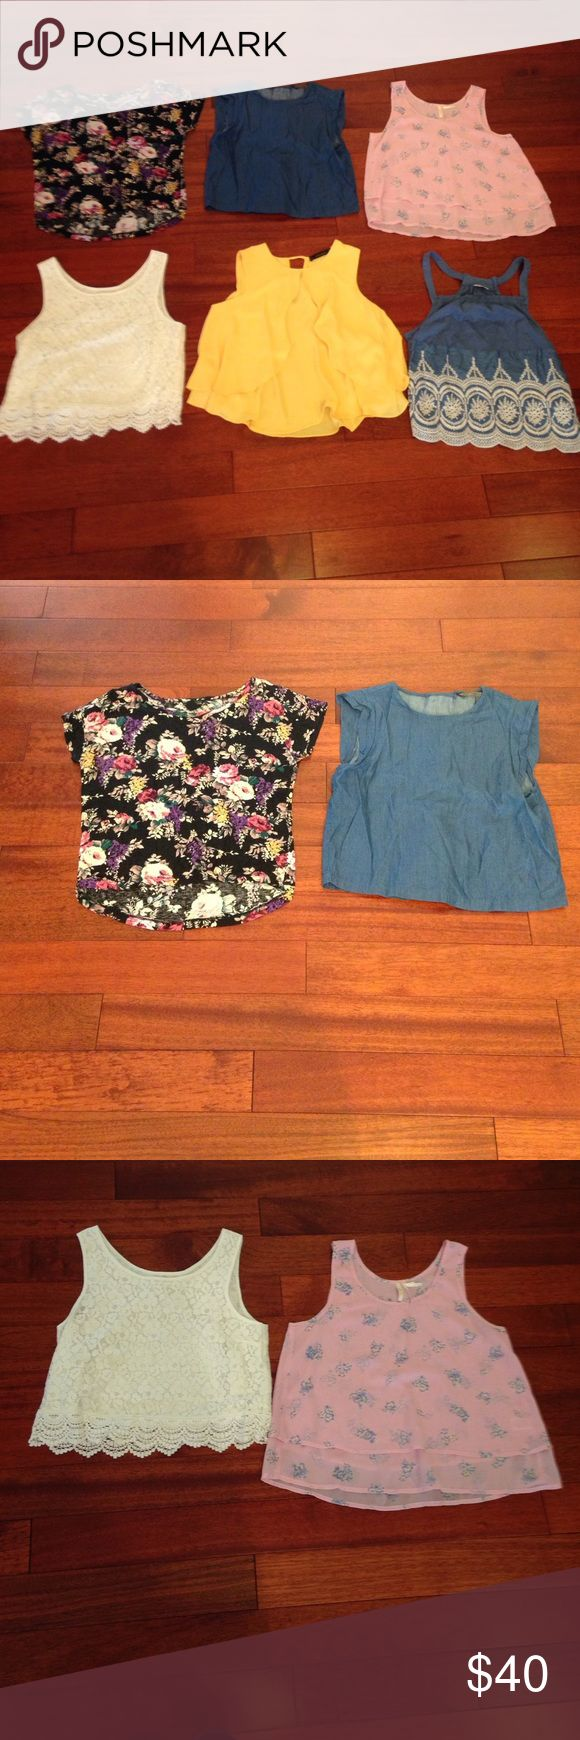 💋Crop top in black floral print Black and floral short sleeve top by forever 21 Forever 21 Tops Crop Tops